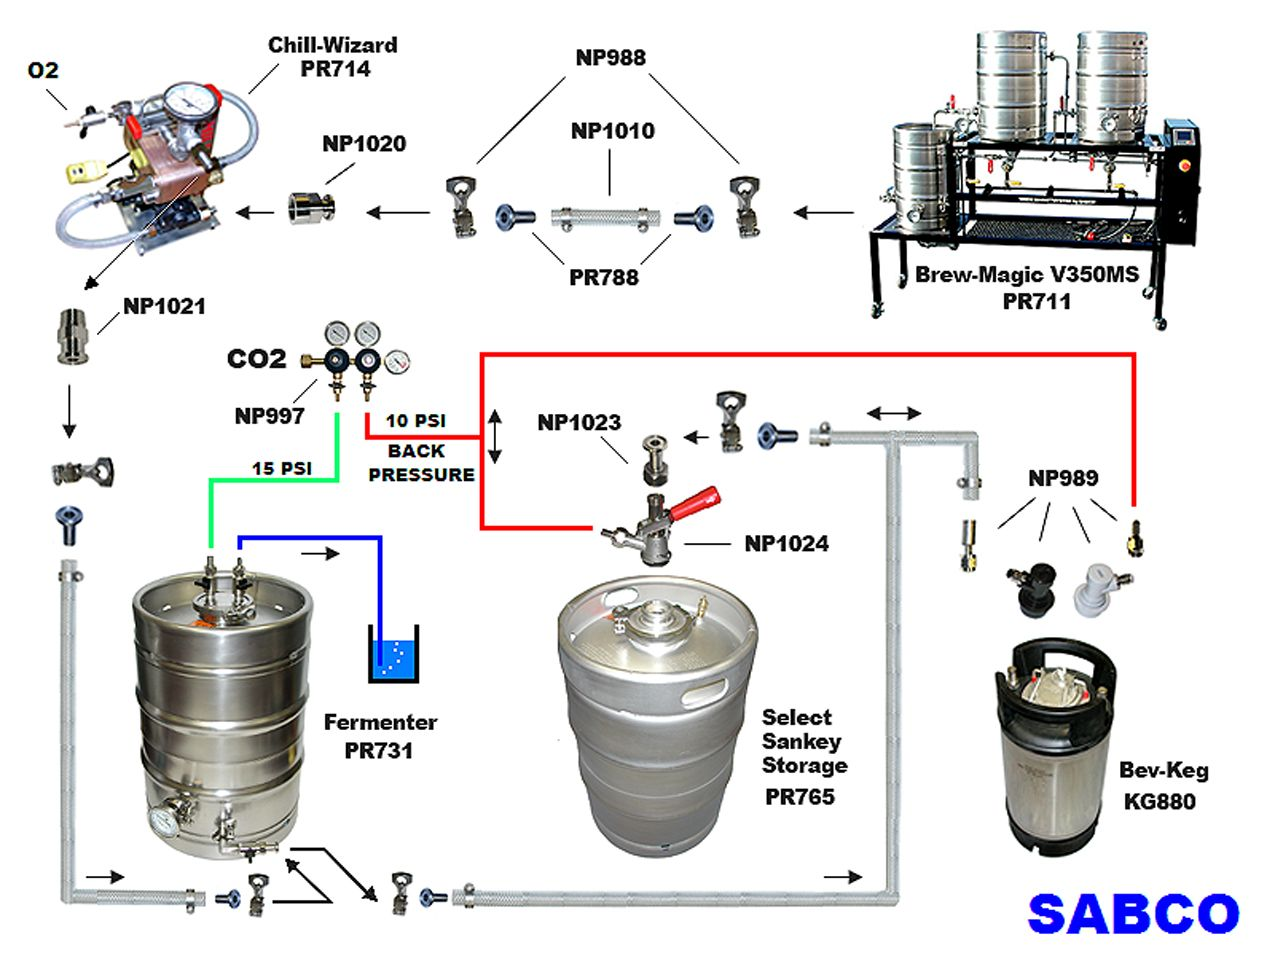 Sabco Schematic Sanitary Fittings And All The Works